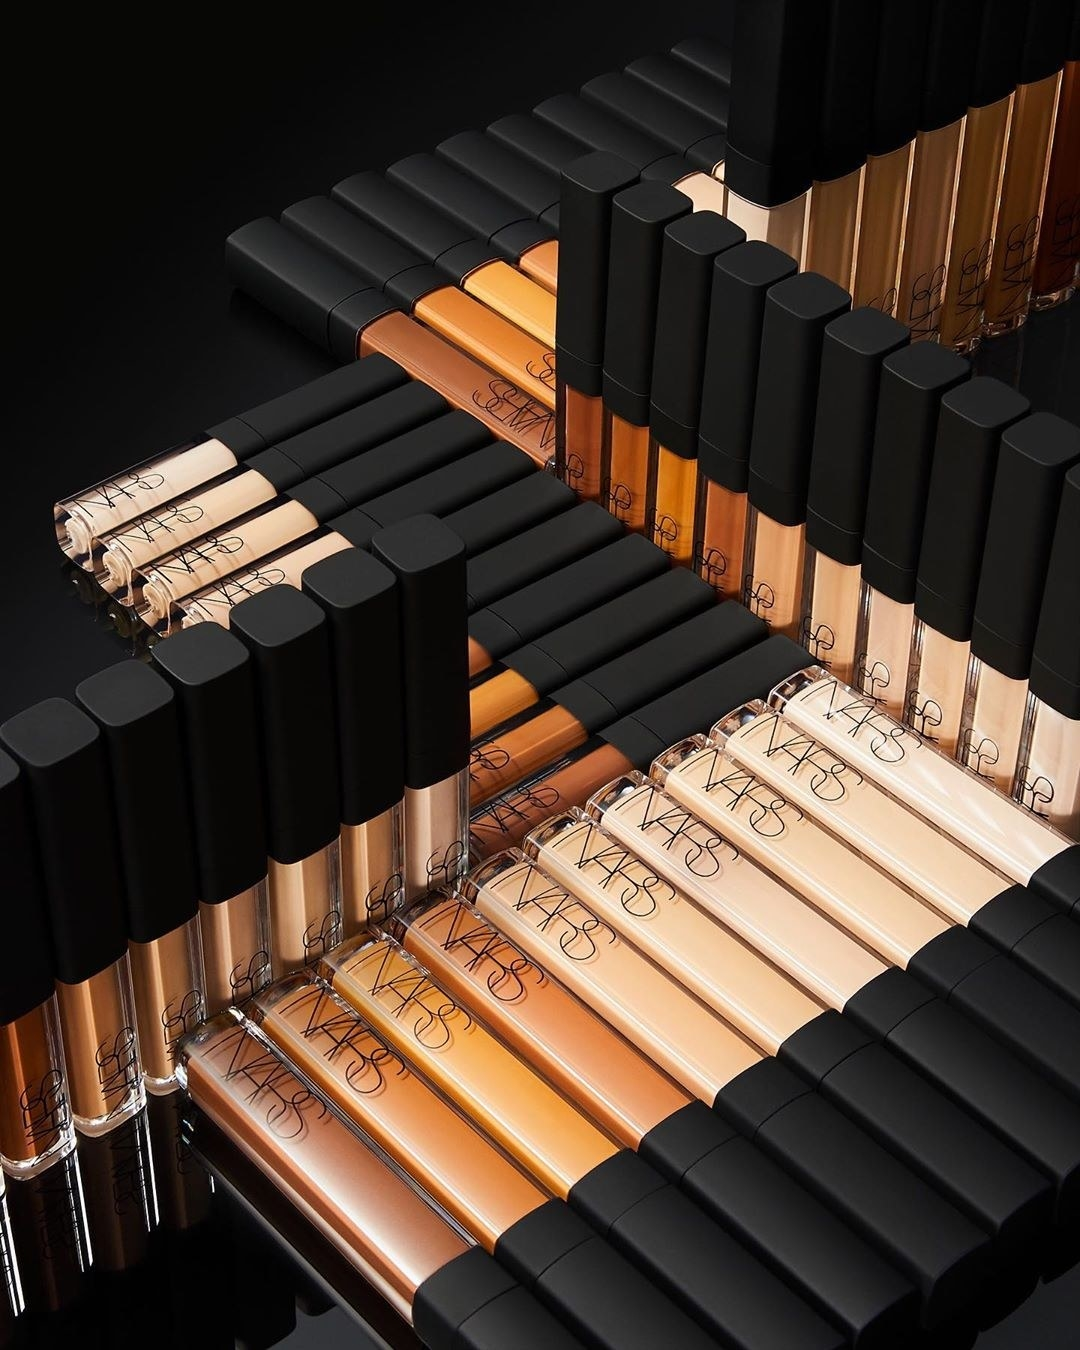 NARS Cosmetics concealer in a variety of shades